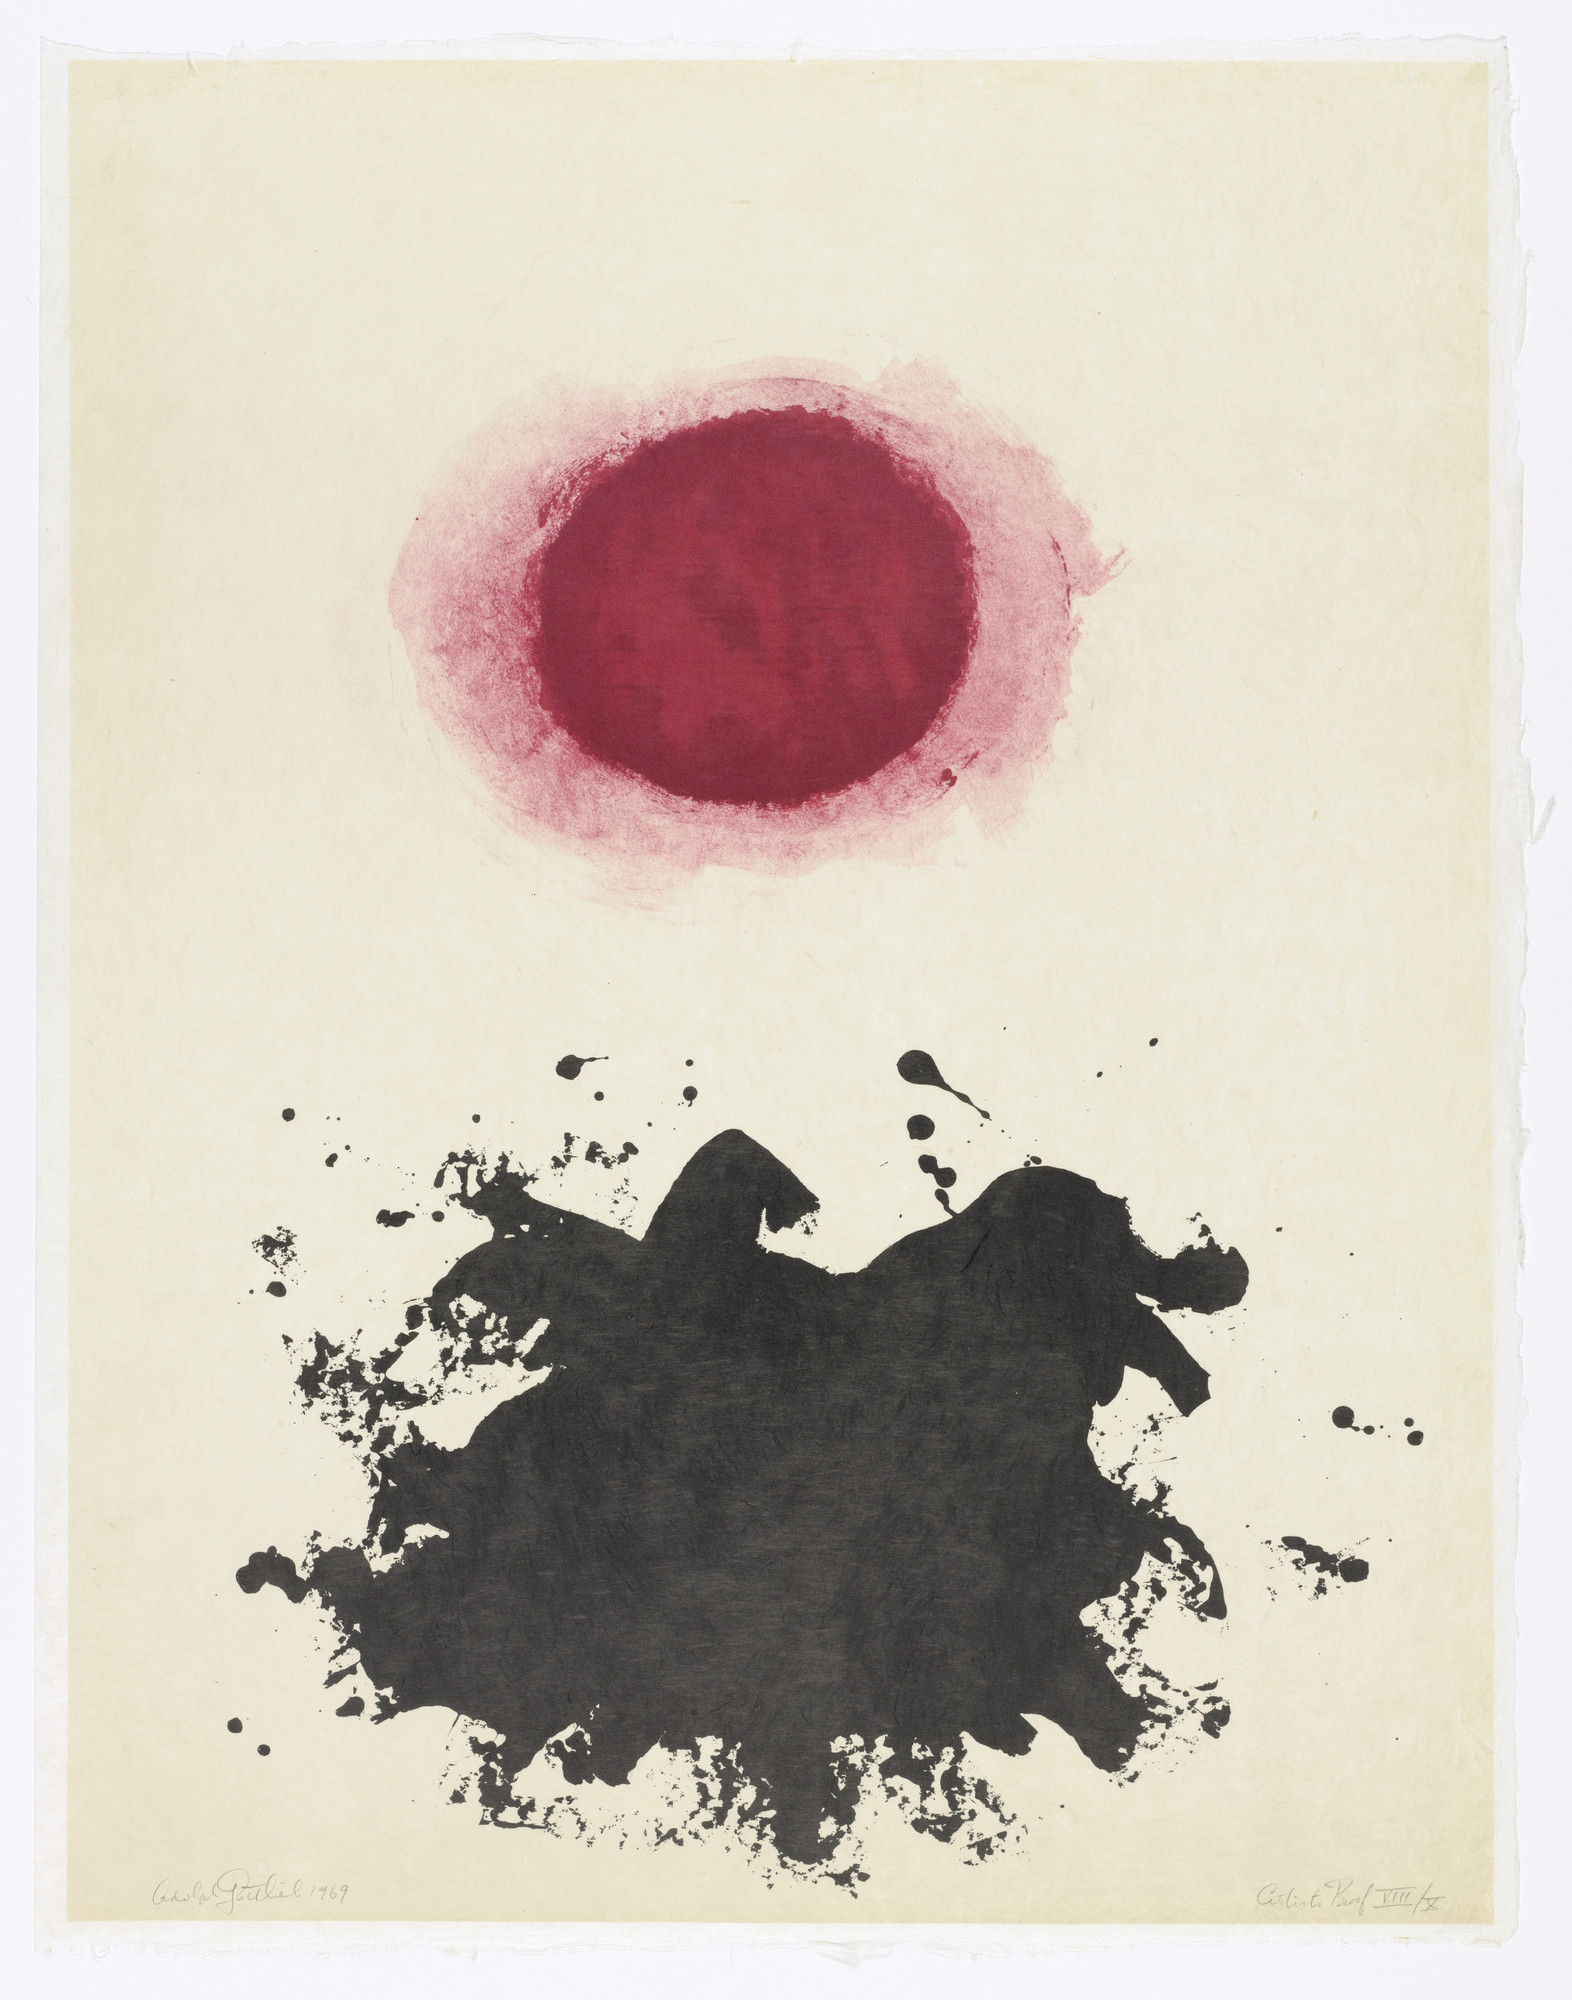 Adolph Gottlieb. Untitled from Flight. 1969, published 1971